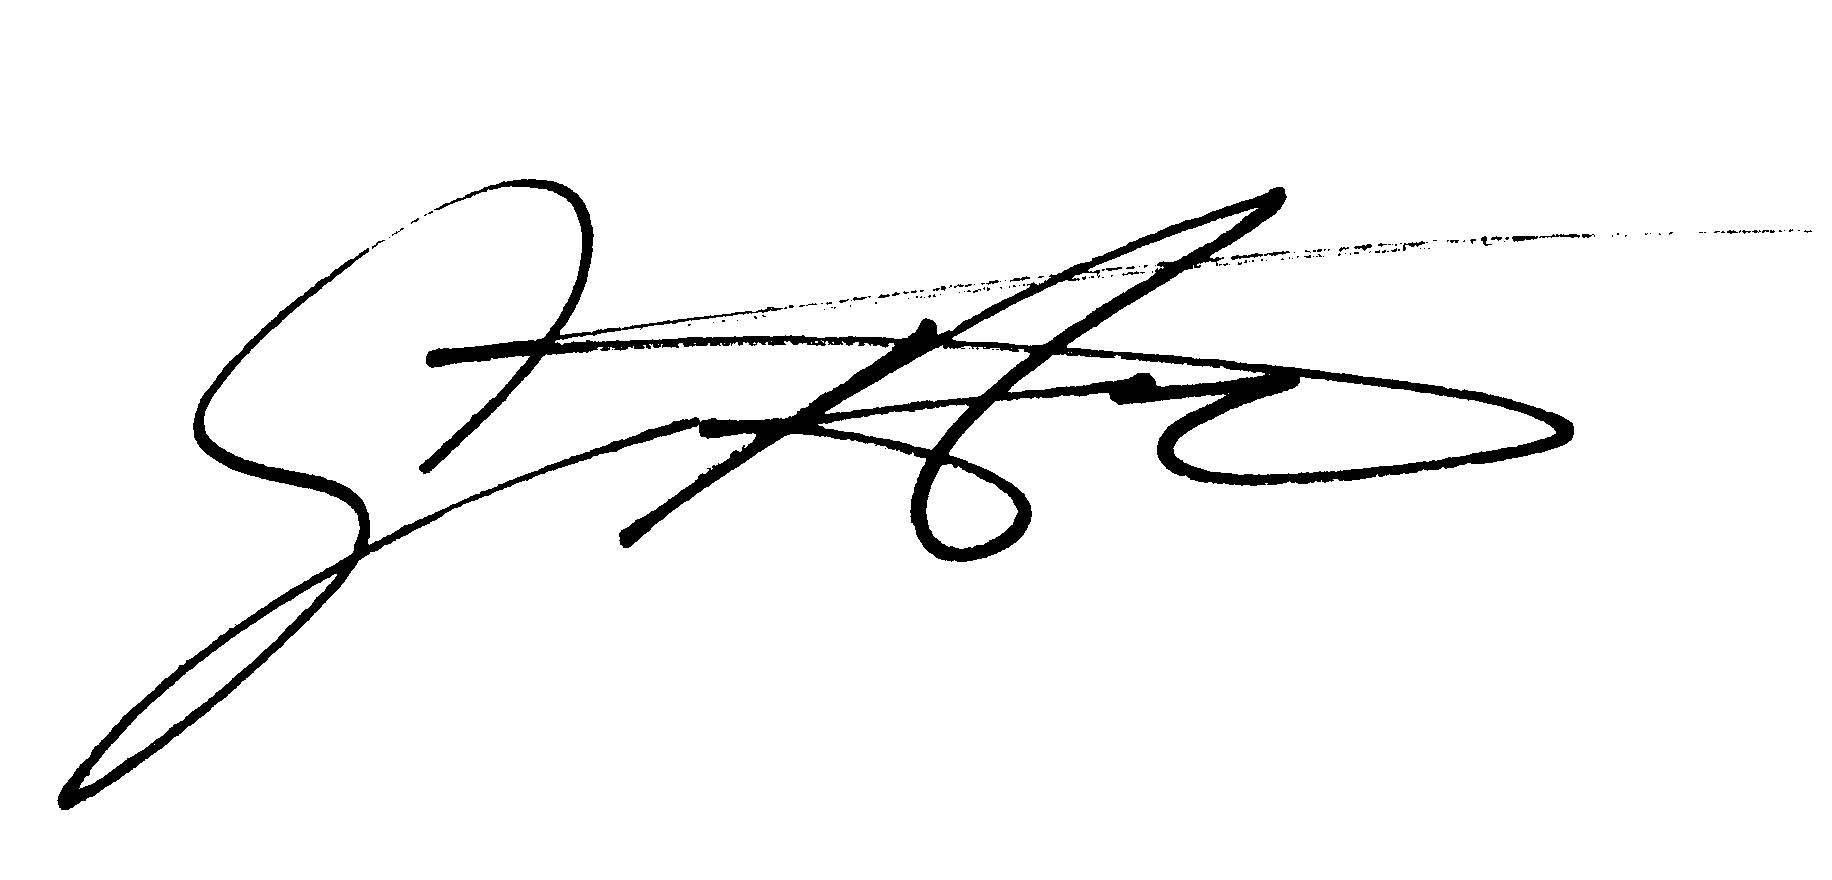 Signature of Jeffrey M. Holsinger President & CEO of VOANR